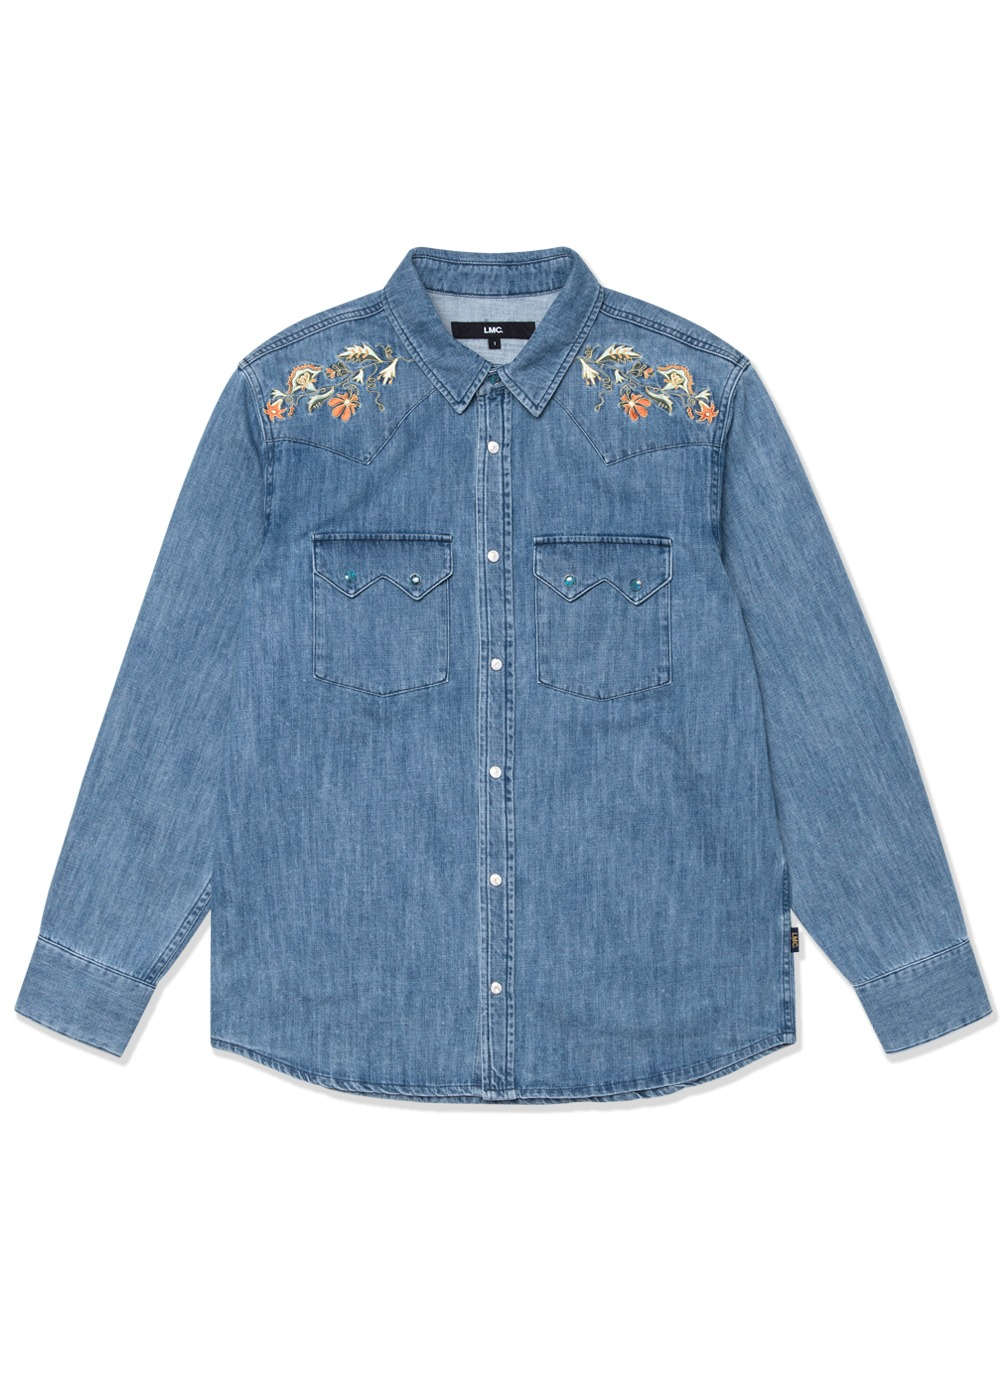 LMC WESTERN DENIM SHIRT blue